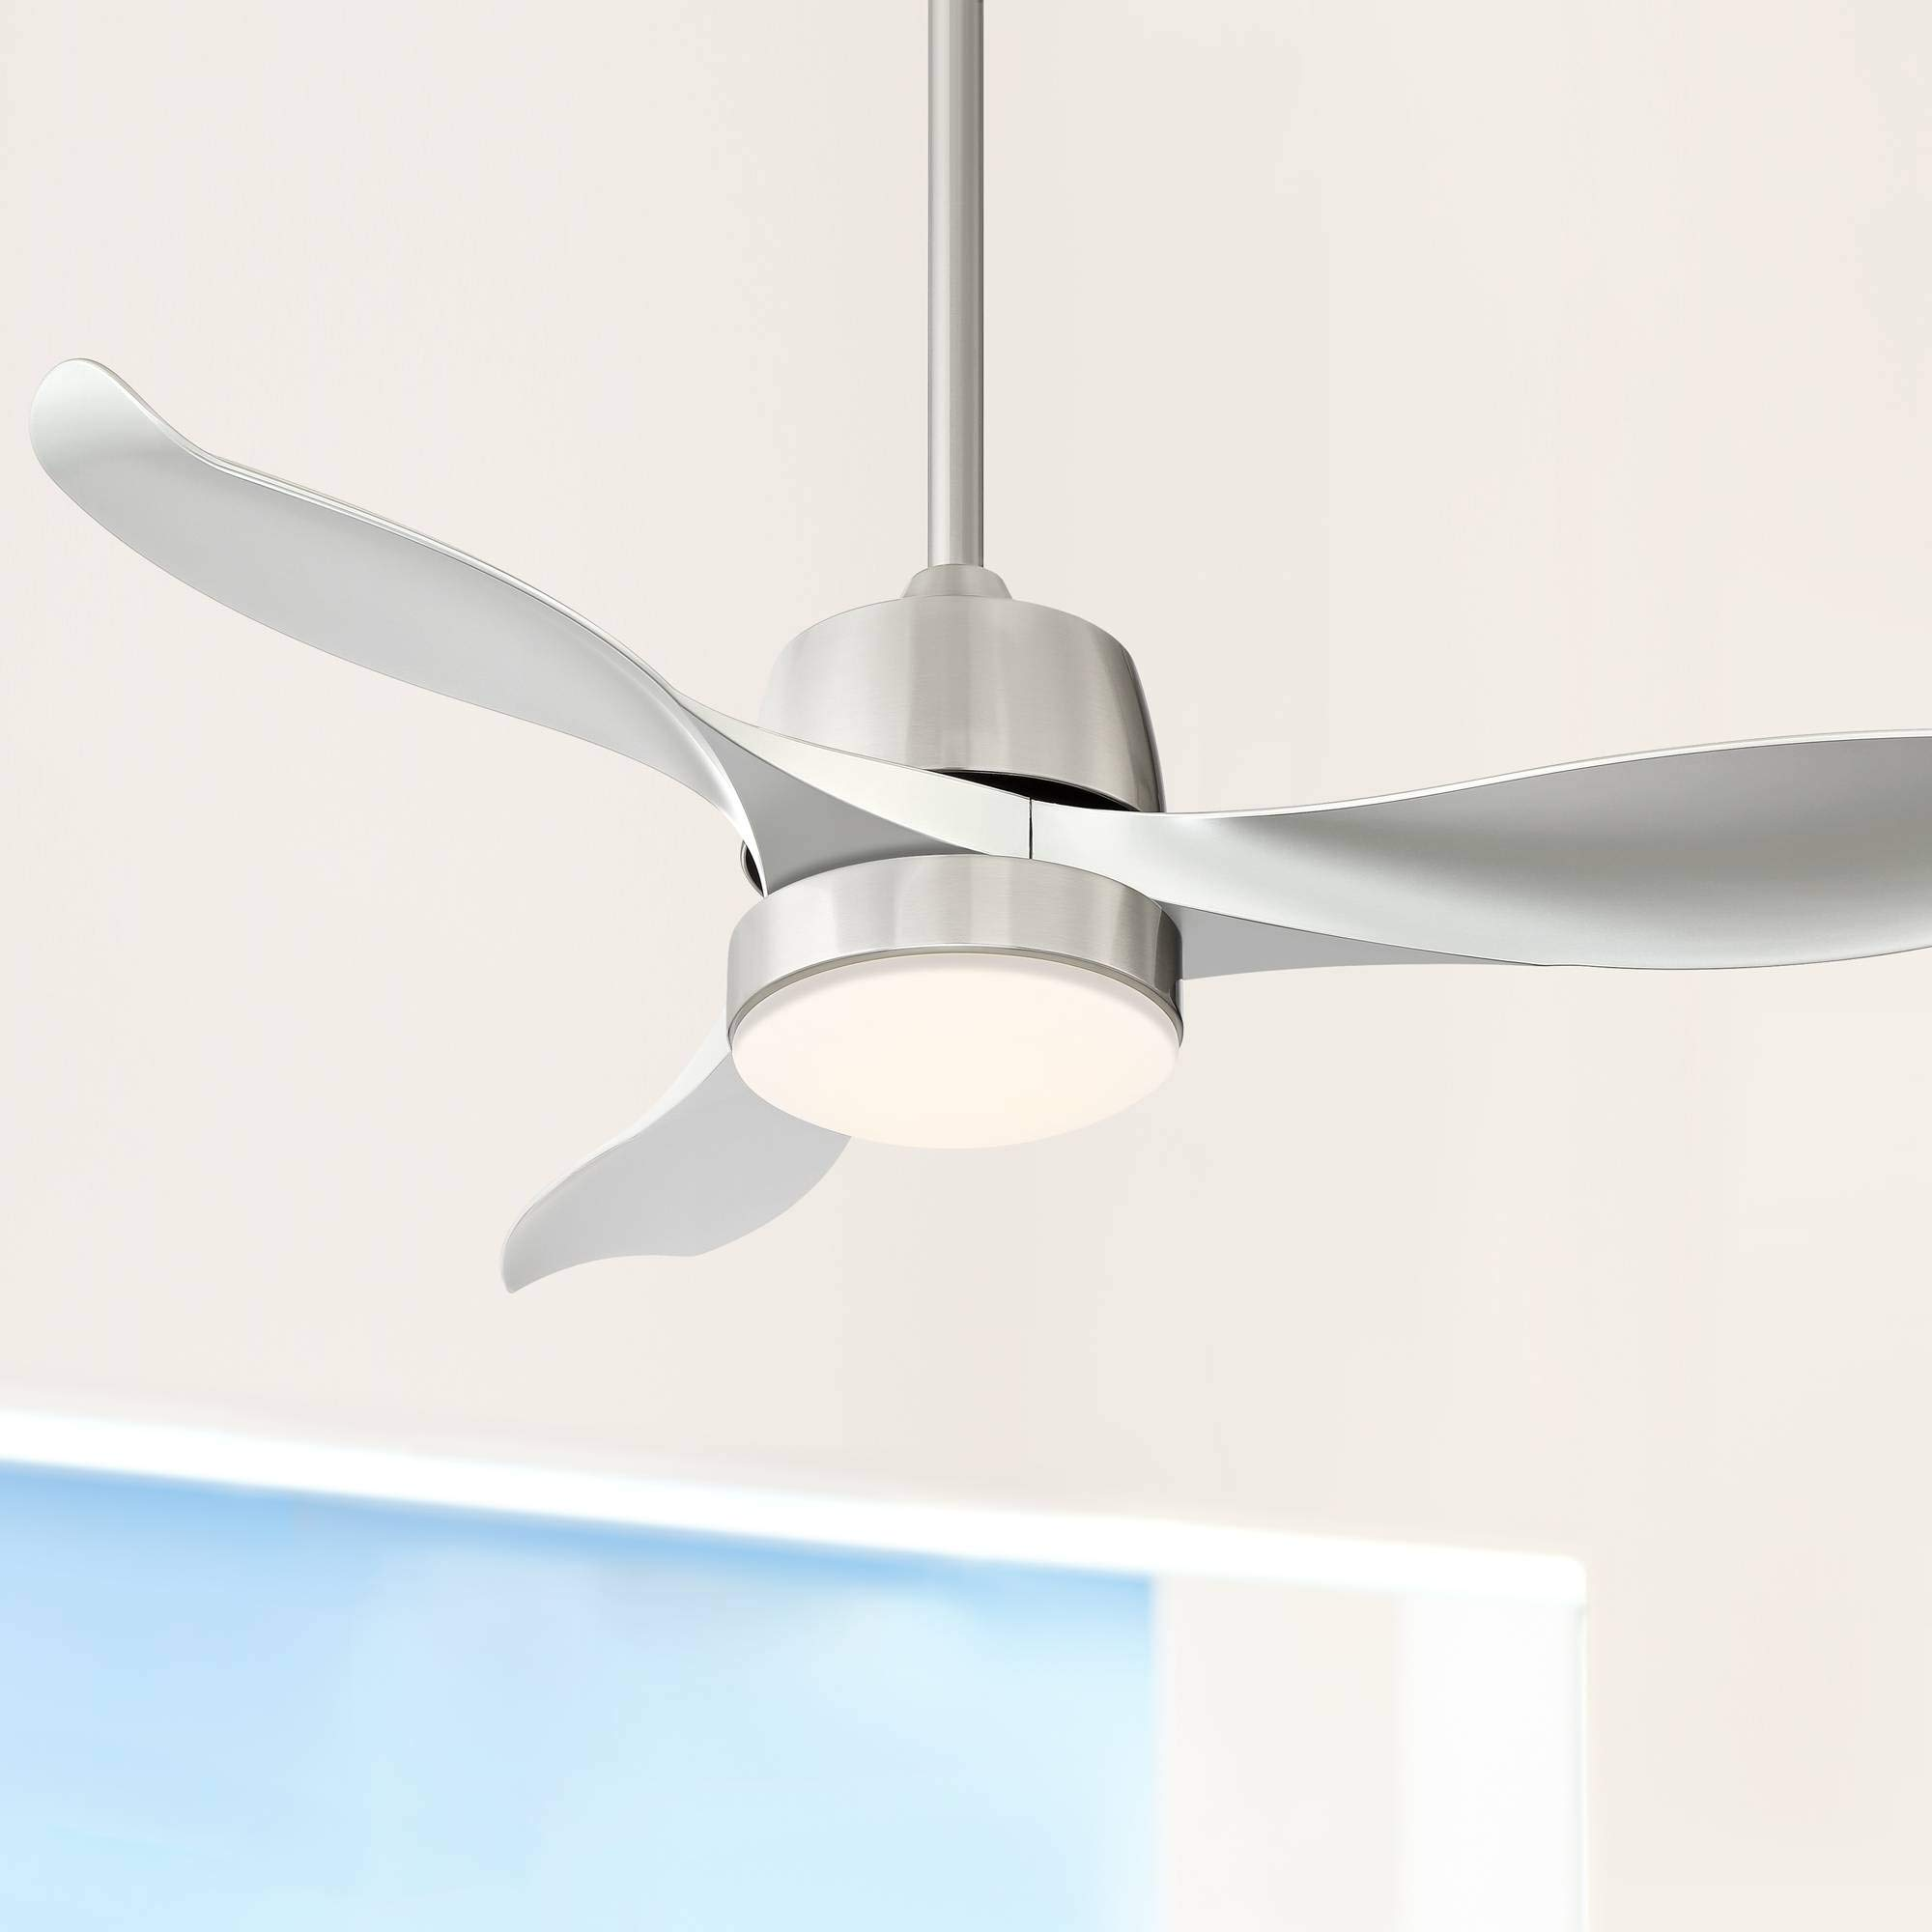 "44"" Lexicon Modern Ceiling Fan with Light LED Dimmable Remote Control Brushed Nickel Silver Blades for Living Room Kitchen Bedroom Family Dining - Casa Vieja"